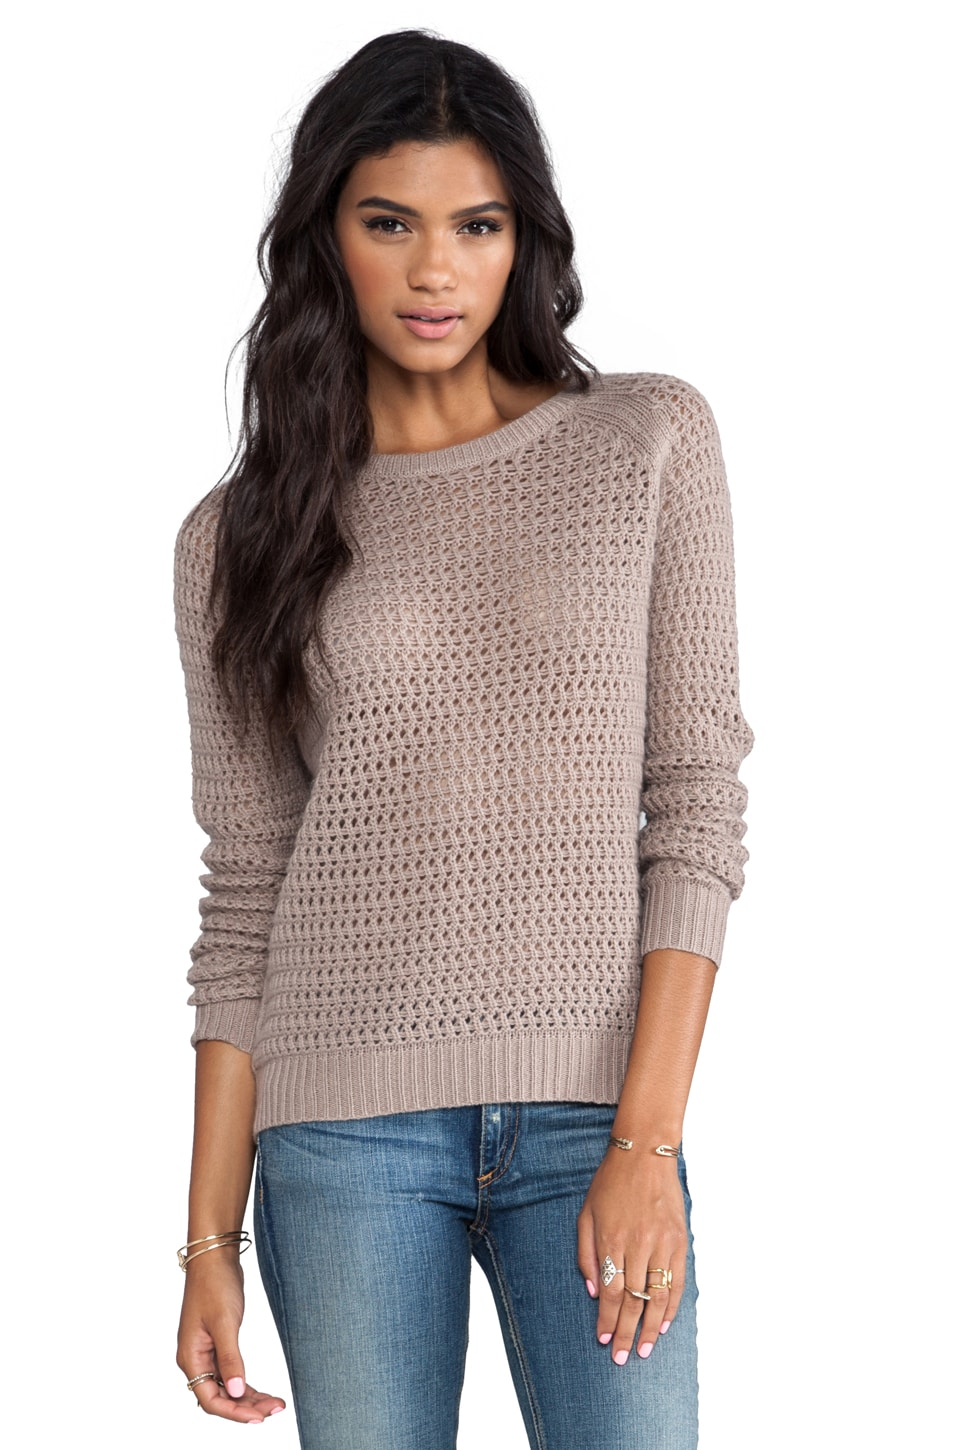 360 Sweater Laria Wool Cashmere Pullover in Almond